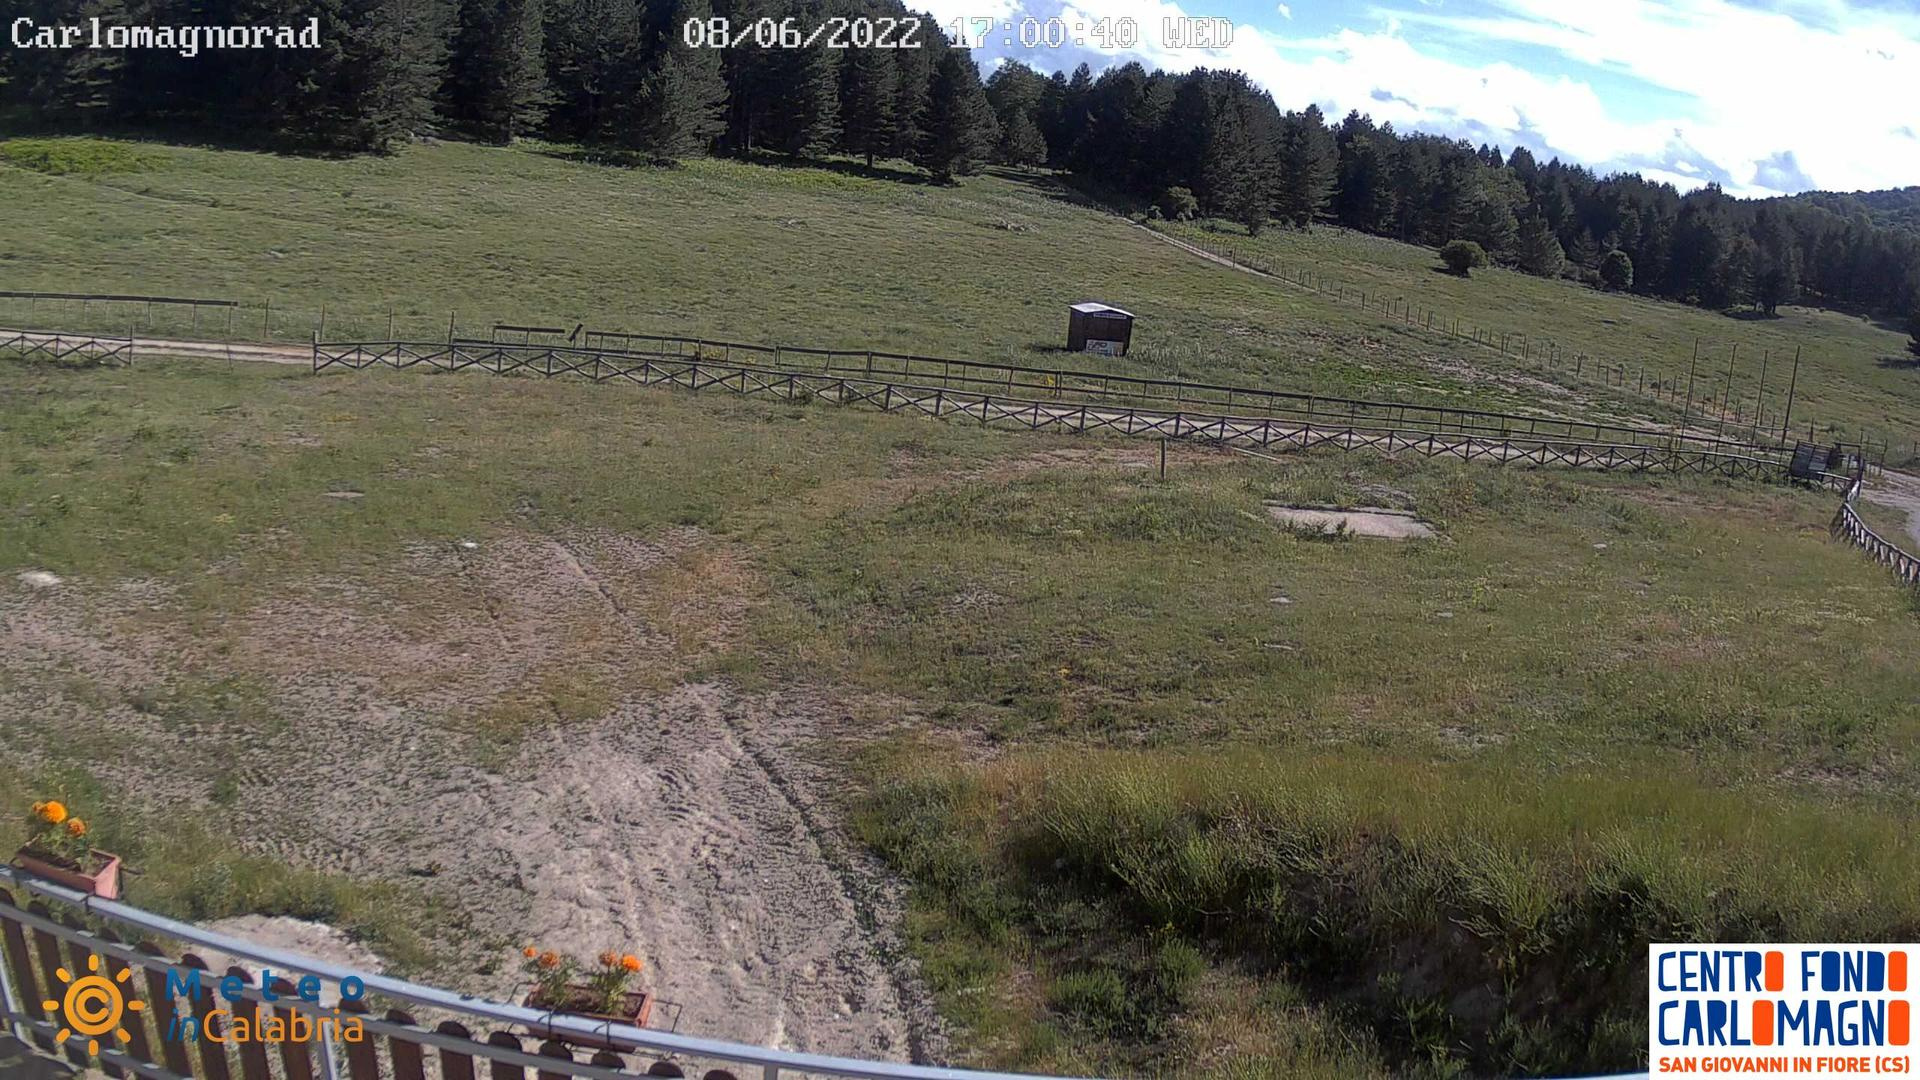 Webcam di Carlomagno